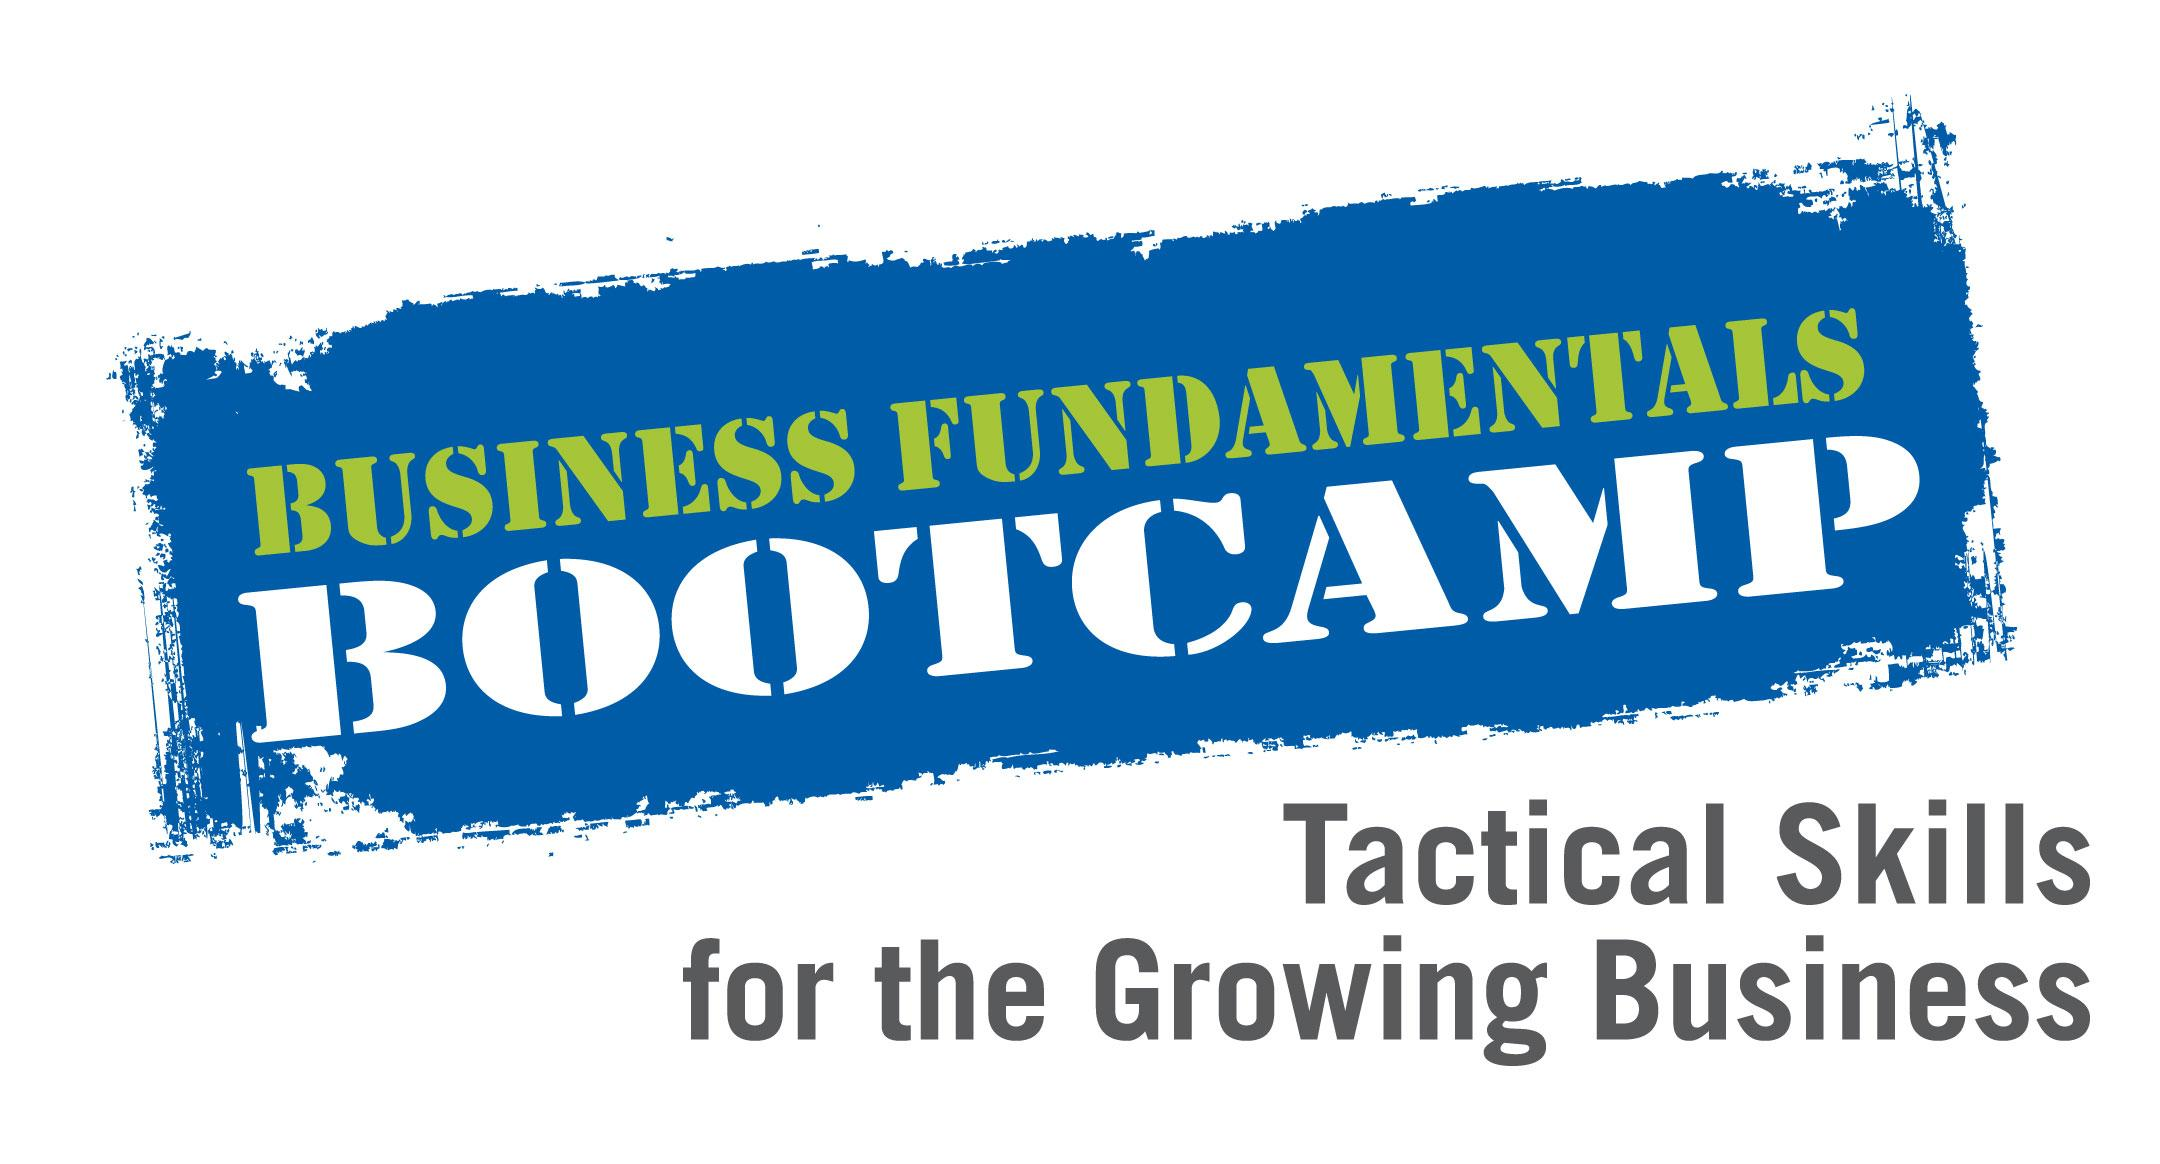 business fundamentals The business-fundamental courses provide the foundation for understanding how organizations function and serve as gateways to upper-level business electives.